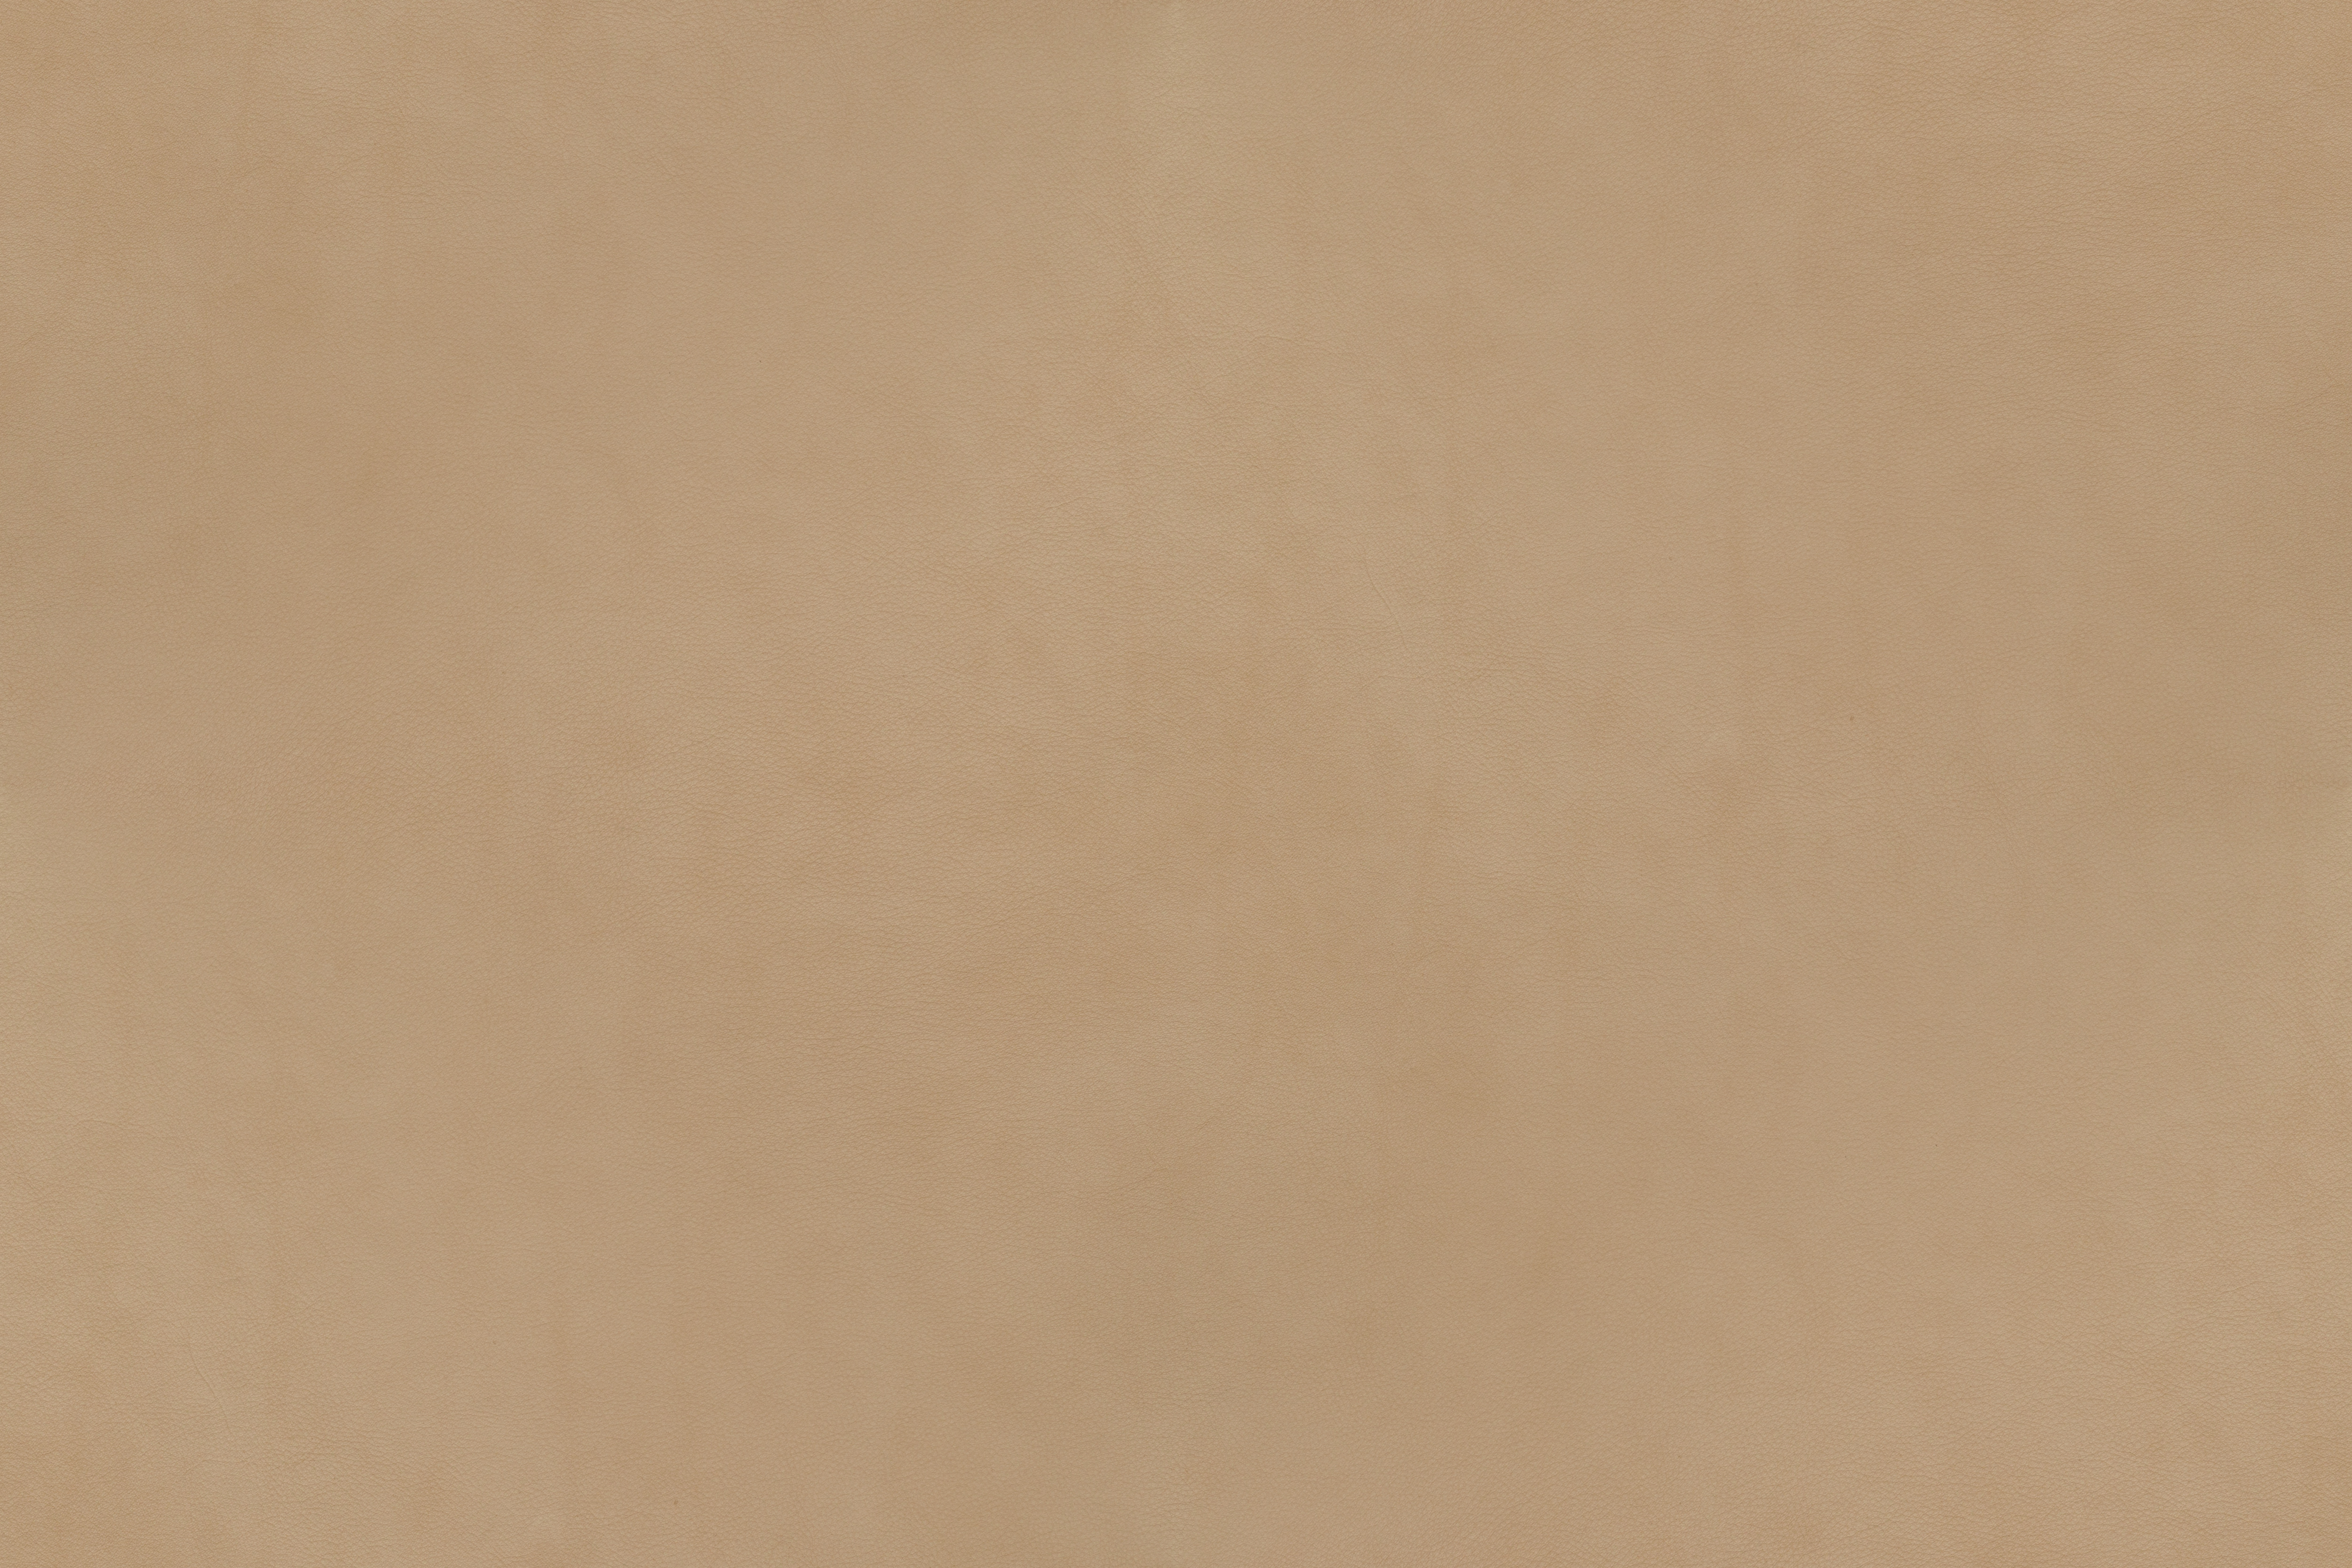 Living Room Wall Leather Texture Campo Series Beige